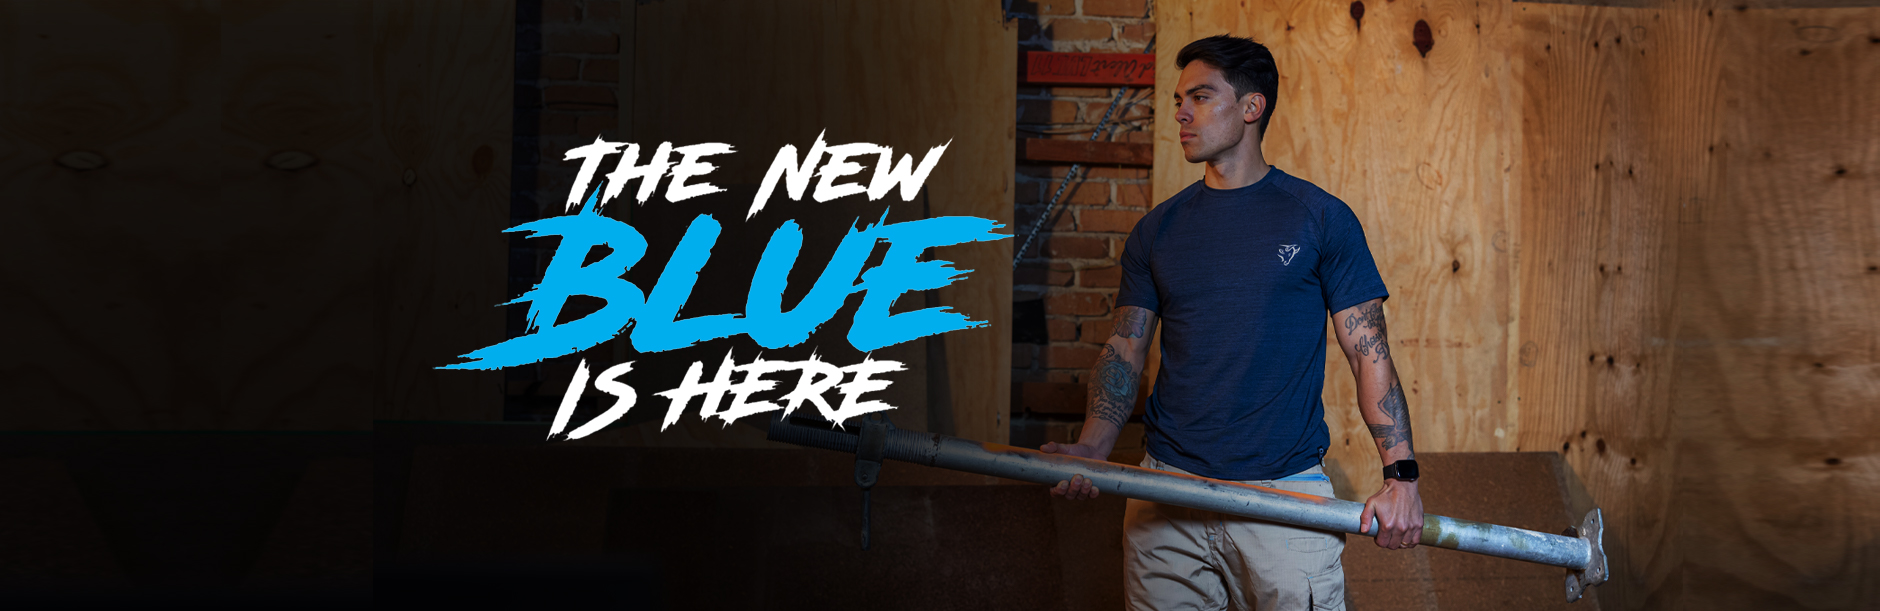 AU_NZ_The New Blue